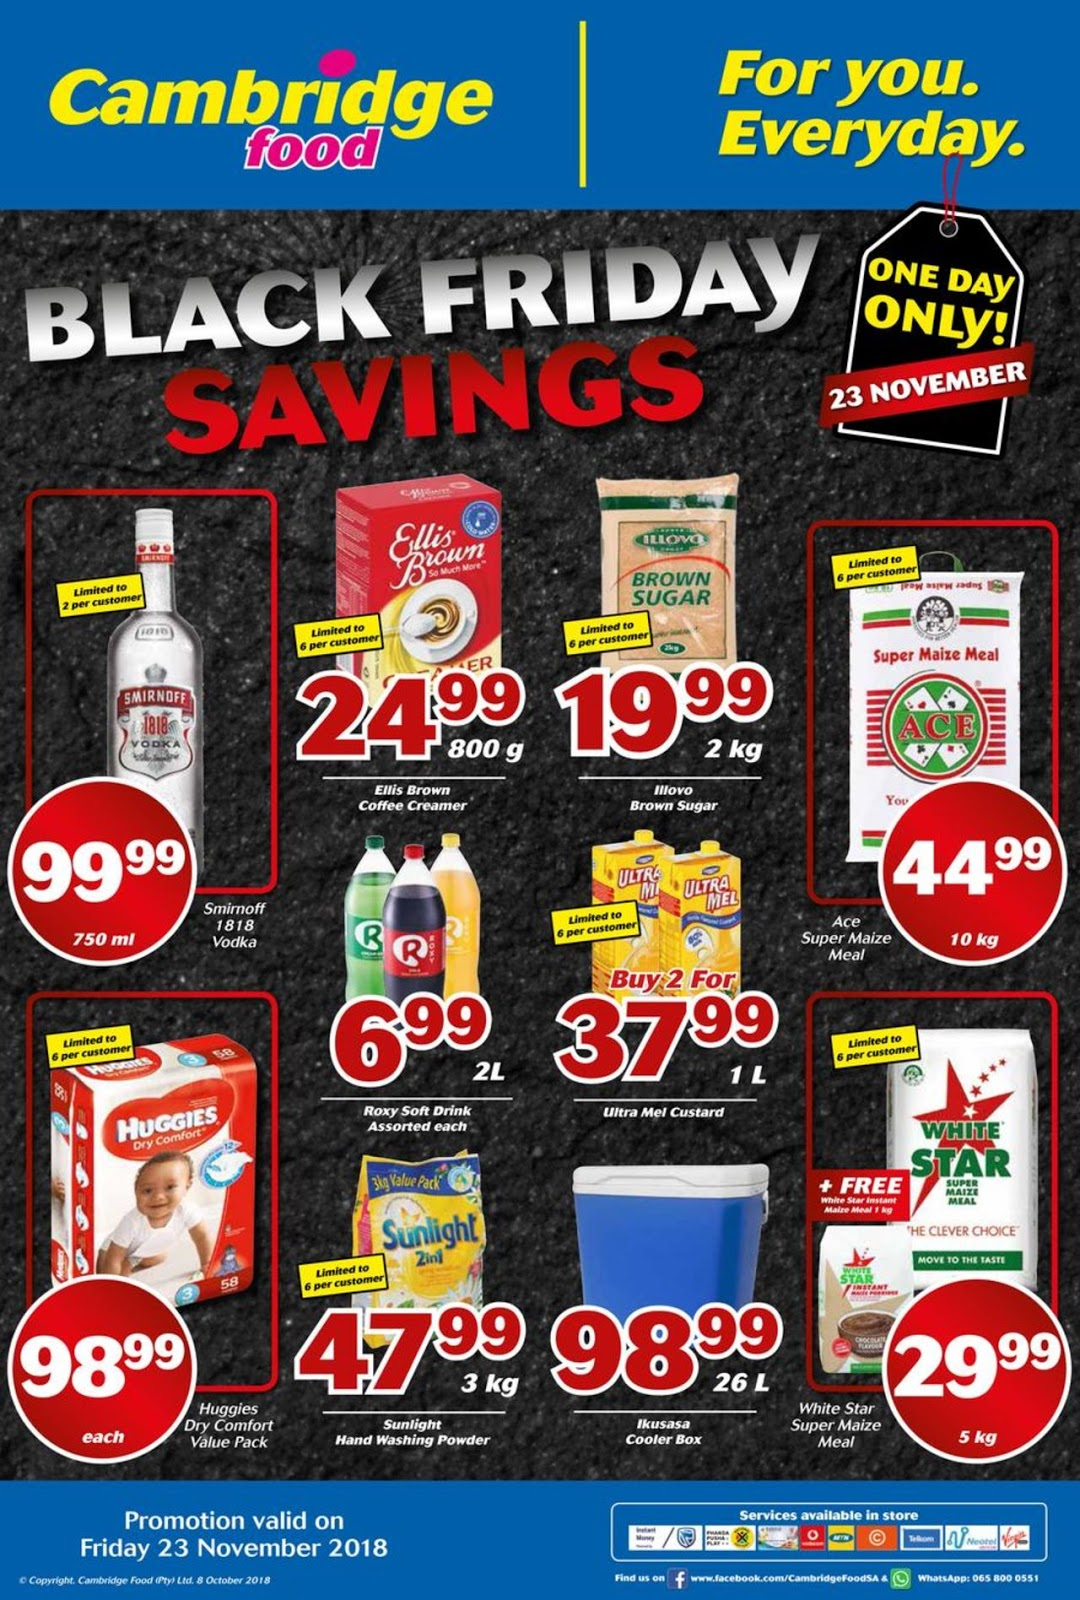 Cambridge Foods Black Friday Specials Amp Deals 2018 Prices